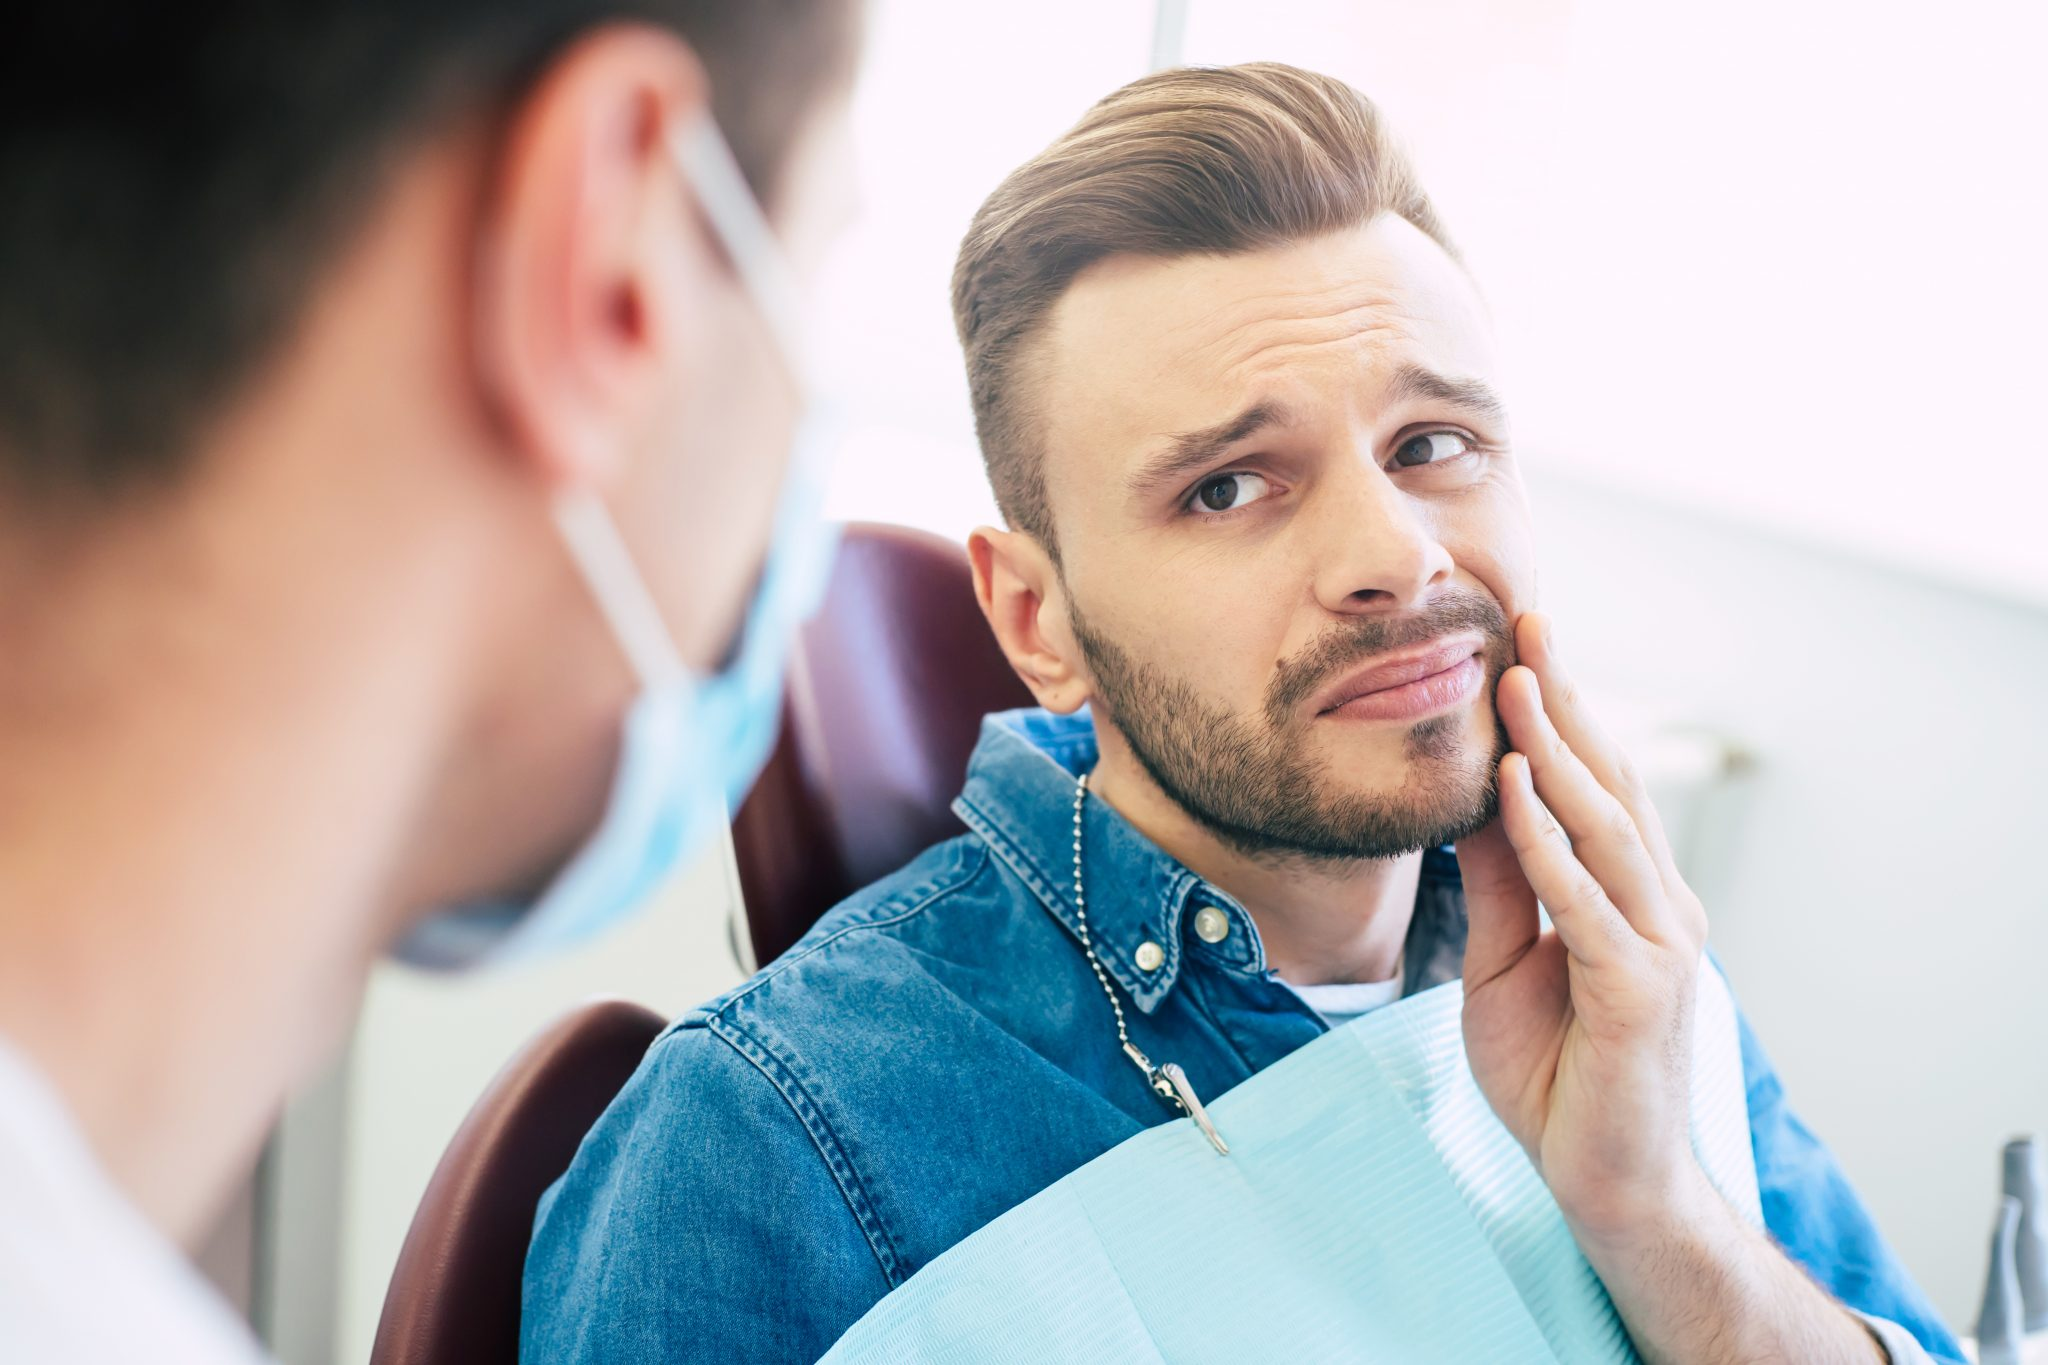 Symptoms Of Gums Pain. A Man With A Worried Face Is Holding His Hand On His Cheek Because Of Irritating Pain In Front Of A Dentist Who Is Going To Give A Patient A Treatment.